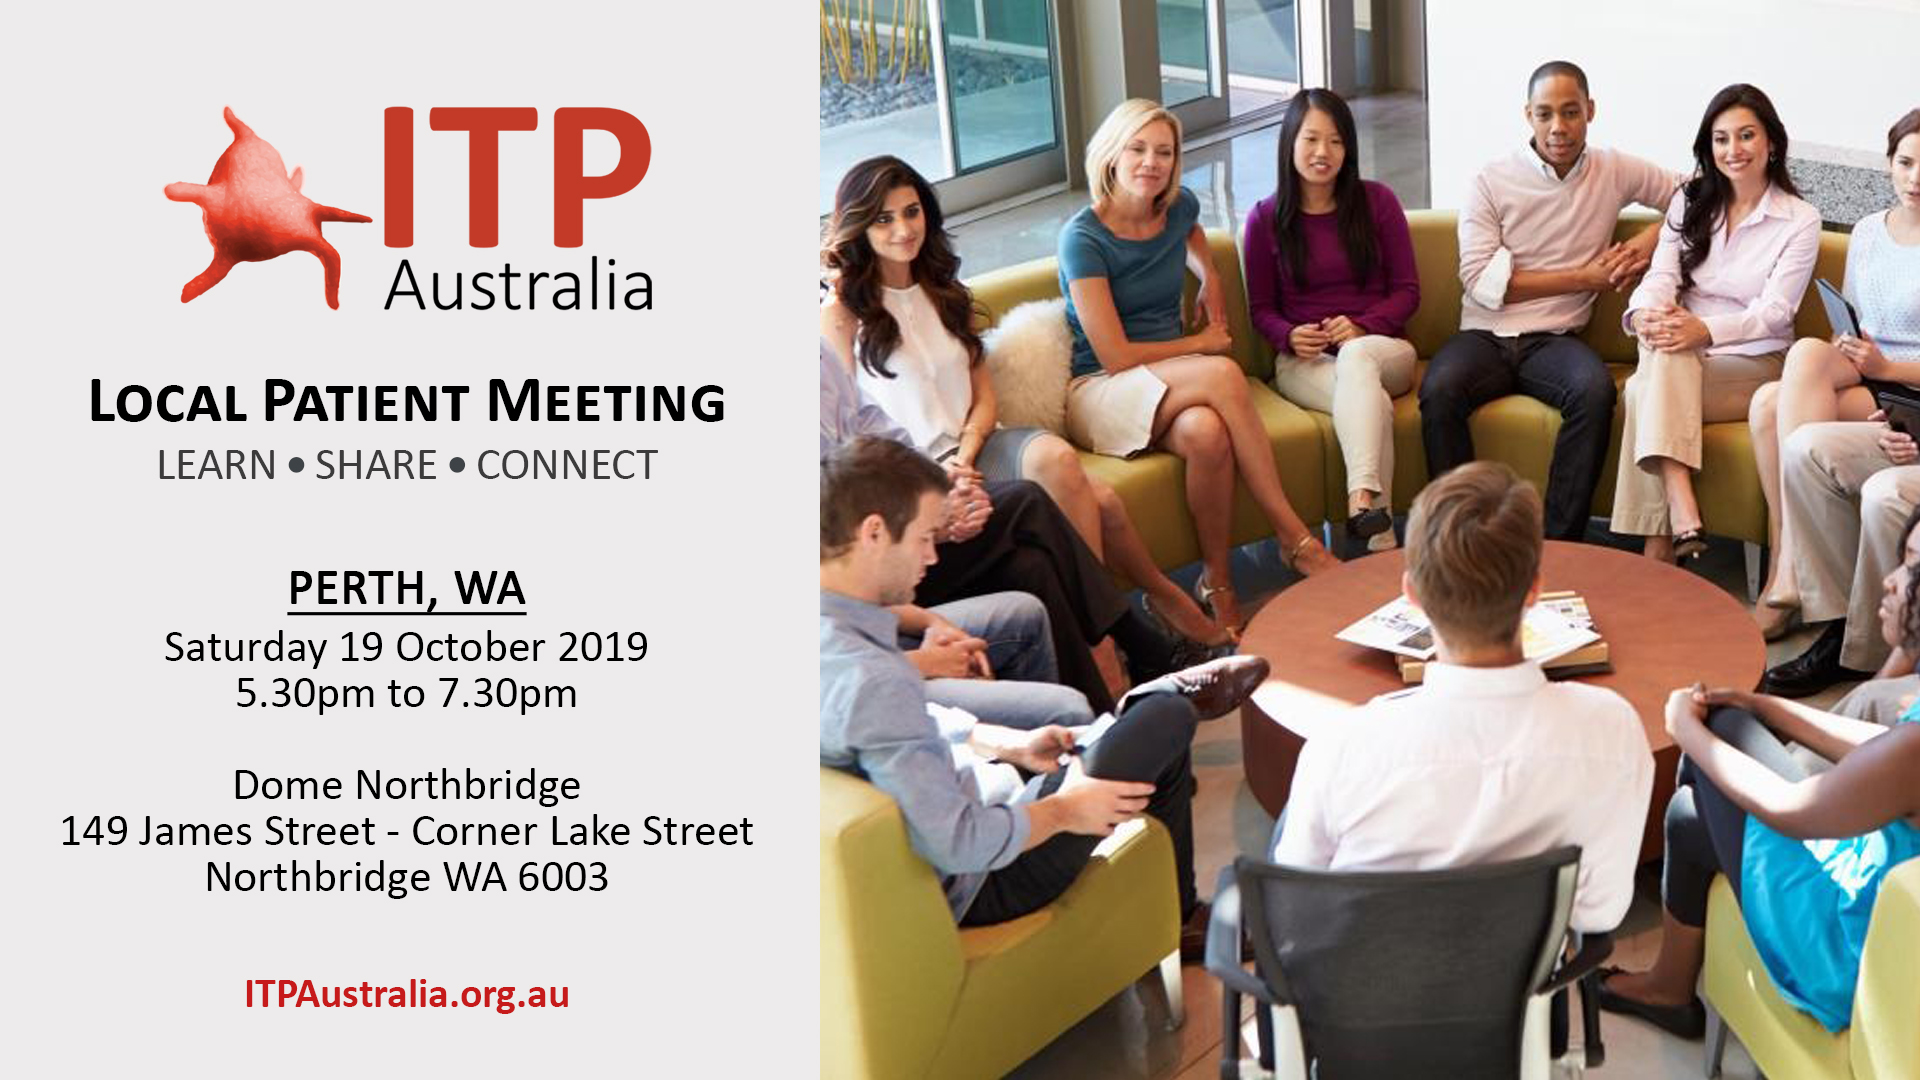 ITP Local Patient Meeting - Perth WA